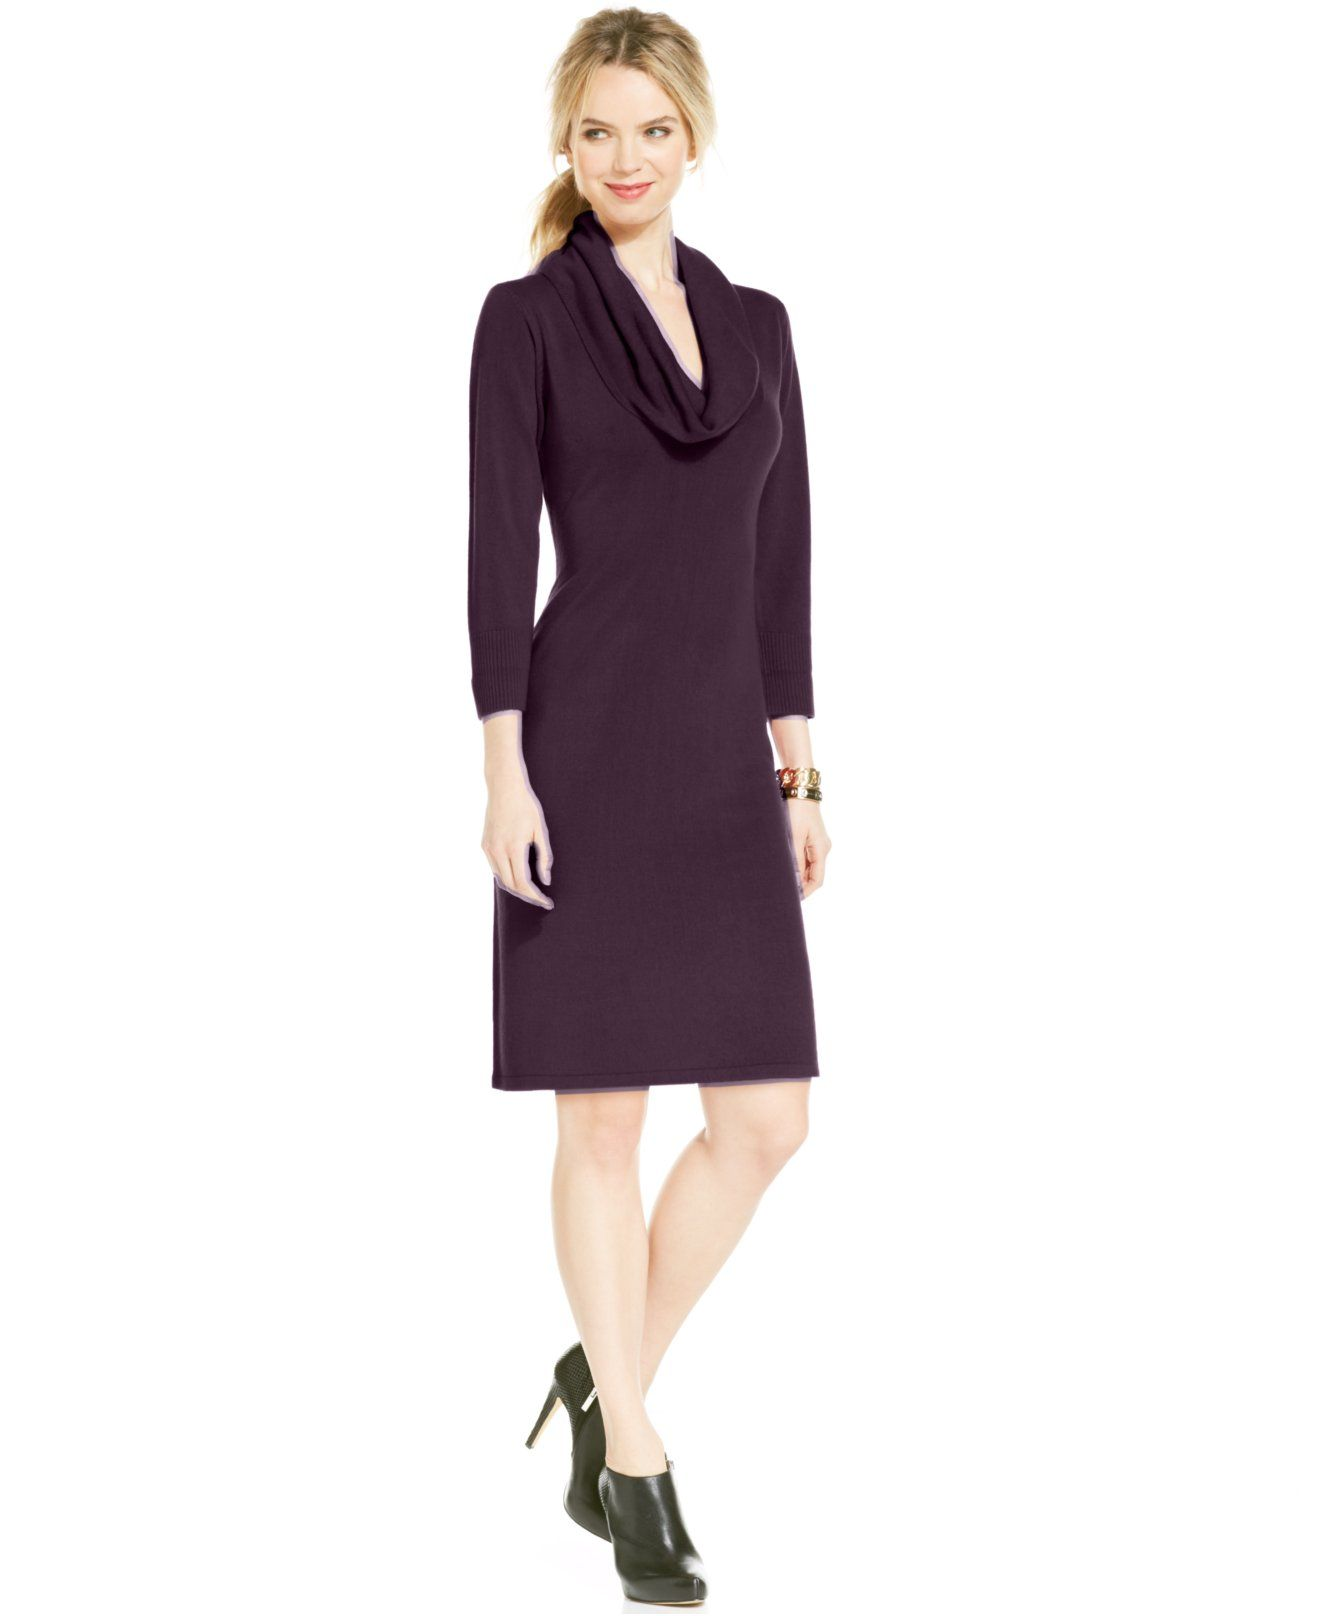 7274262eefd5 Connected Petite Cowl-Neck Sweater Dress - Petite Sale & Clearance - Women  - Macy's